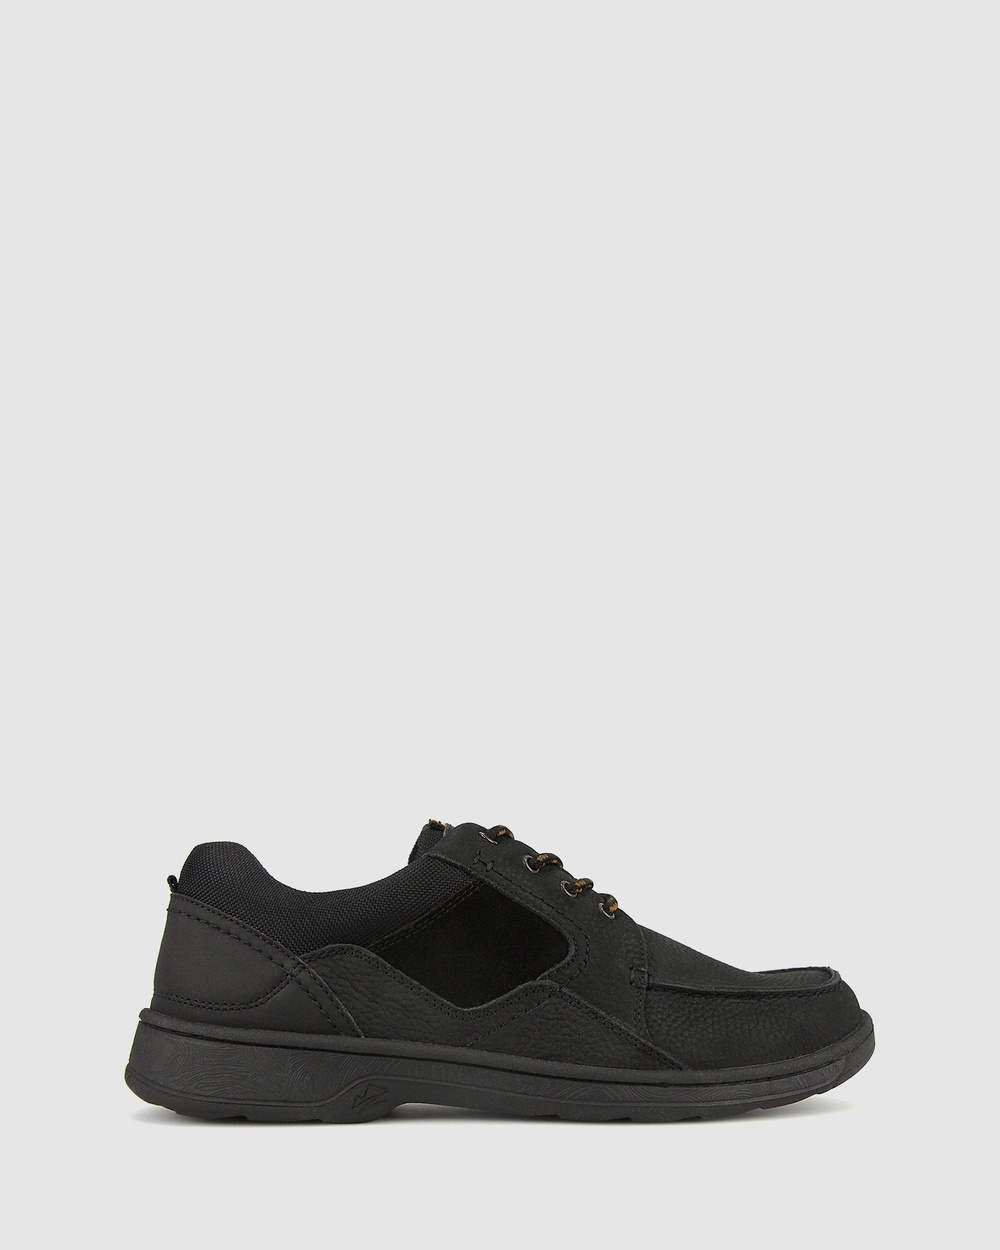 Airflex Nelson Premium Leather Sneakers Casual Shoes Black